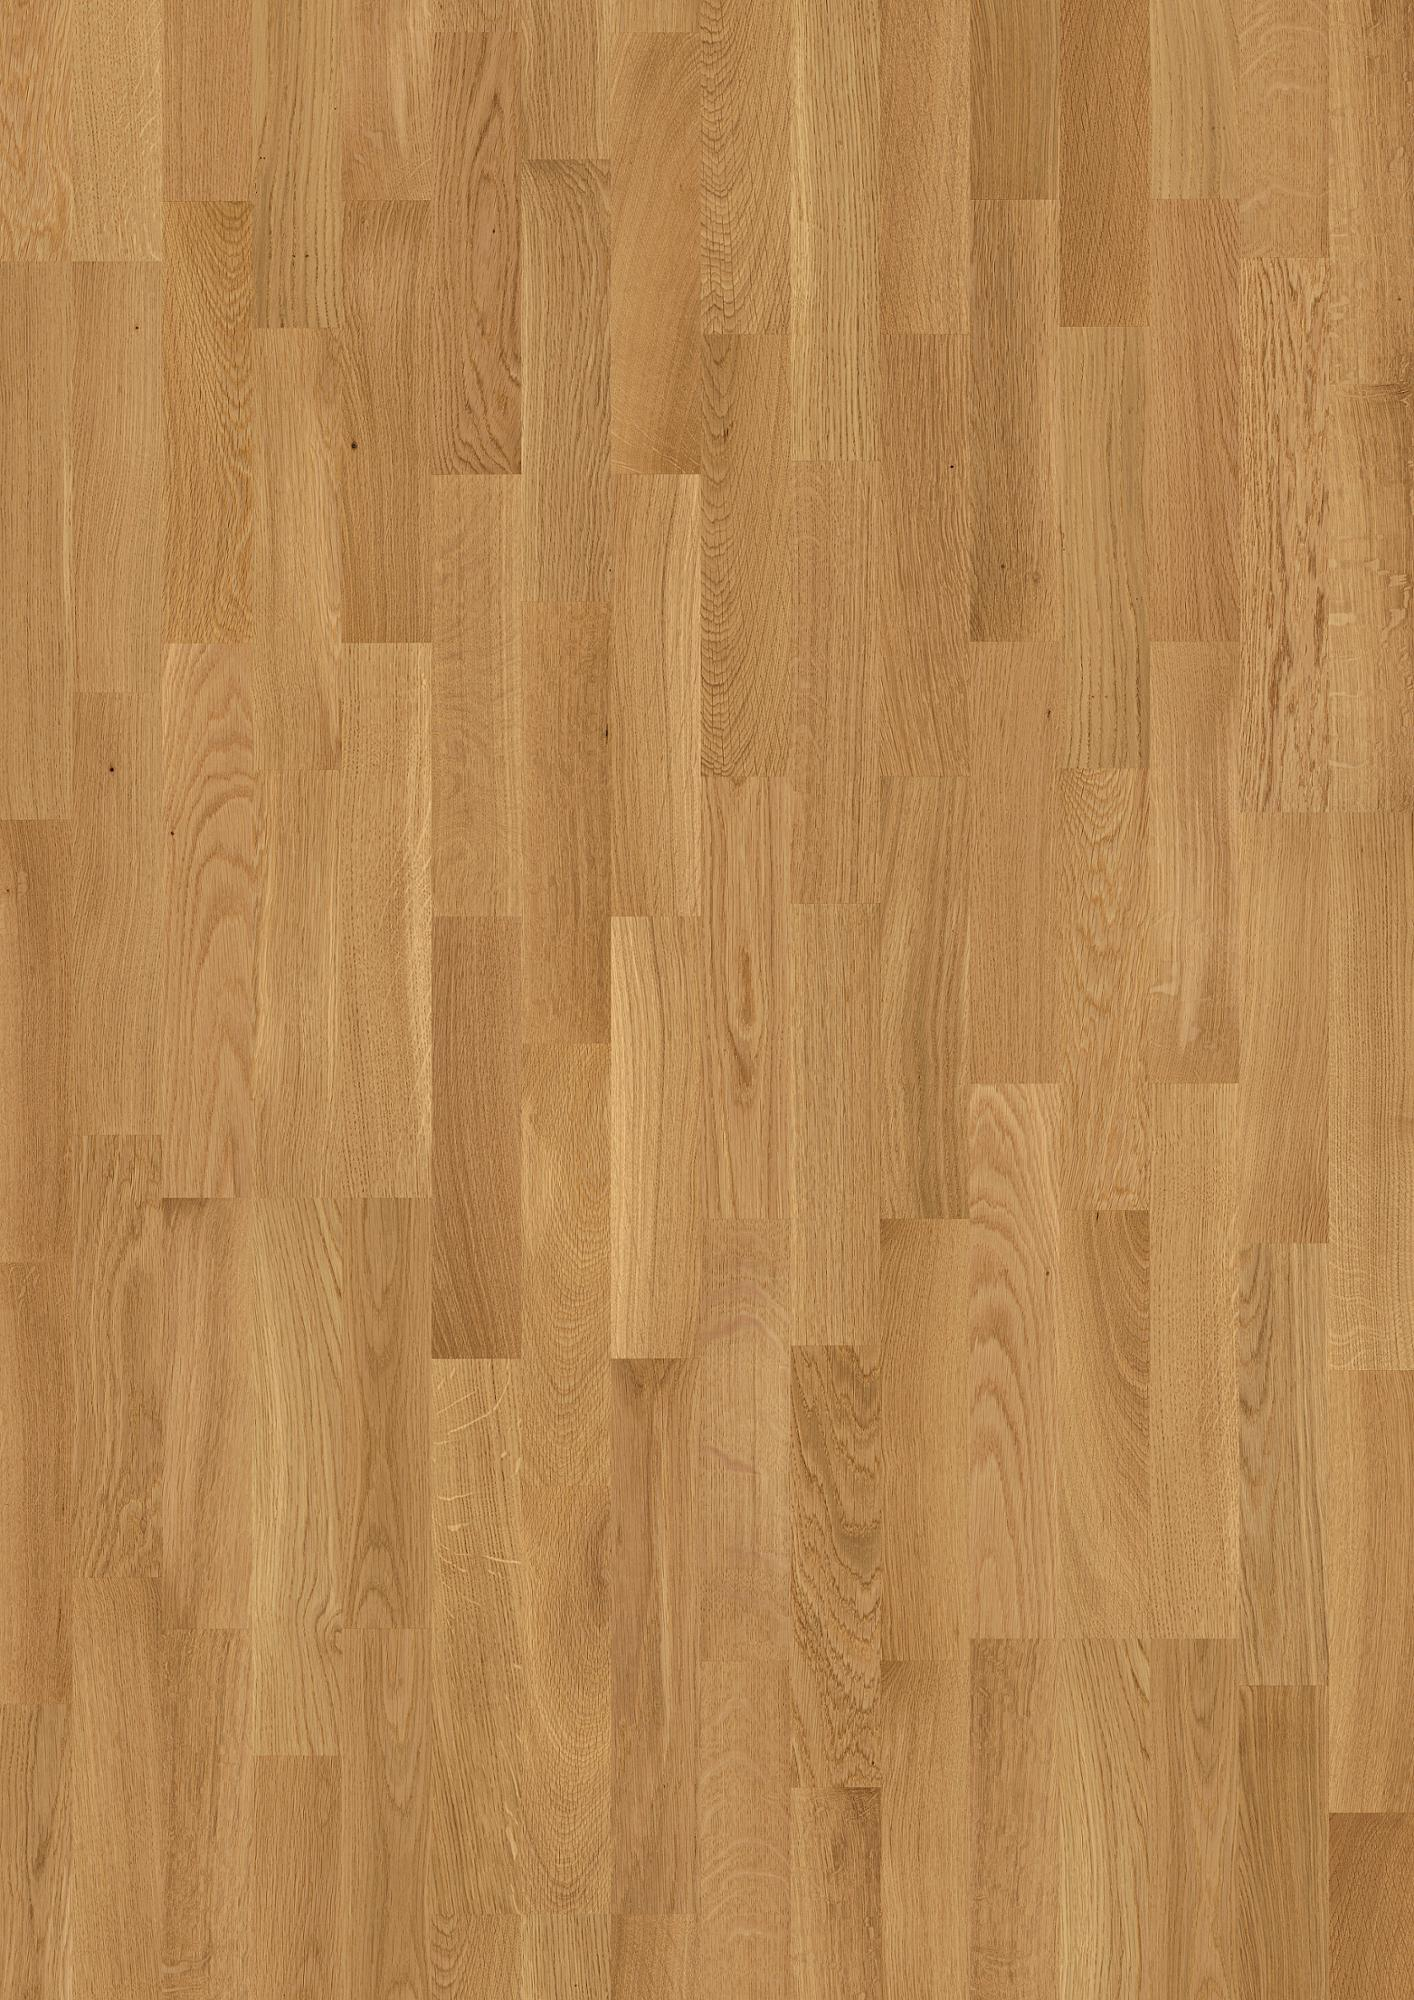 Oak Andante, Live Satin lacquer, Longstrip 3-Strip, 14x215x2200mm